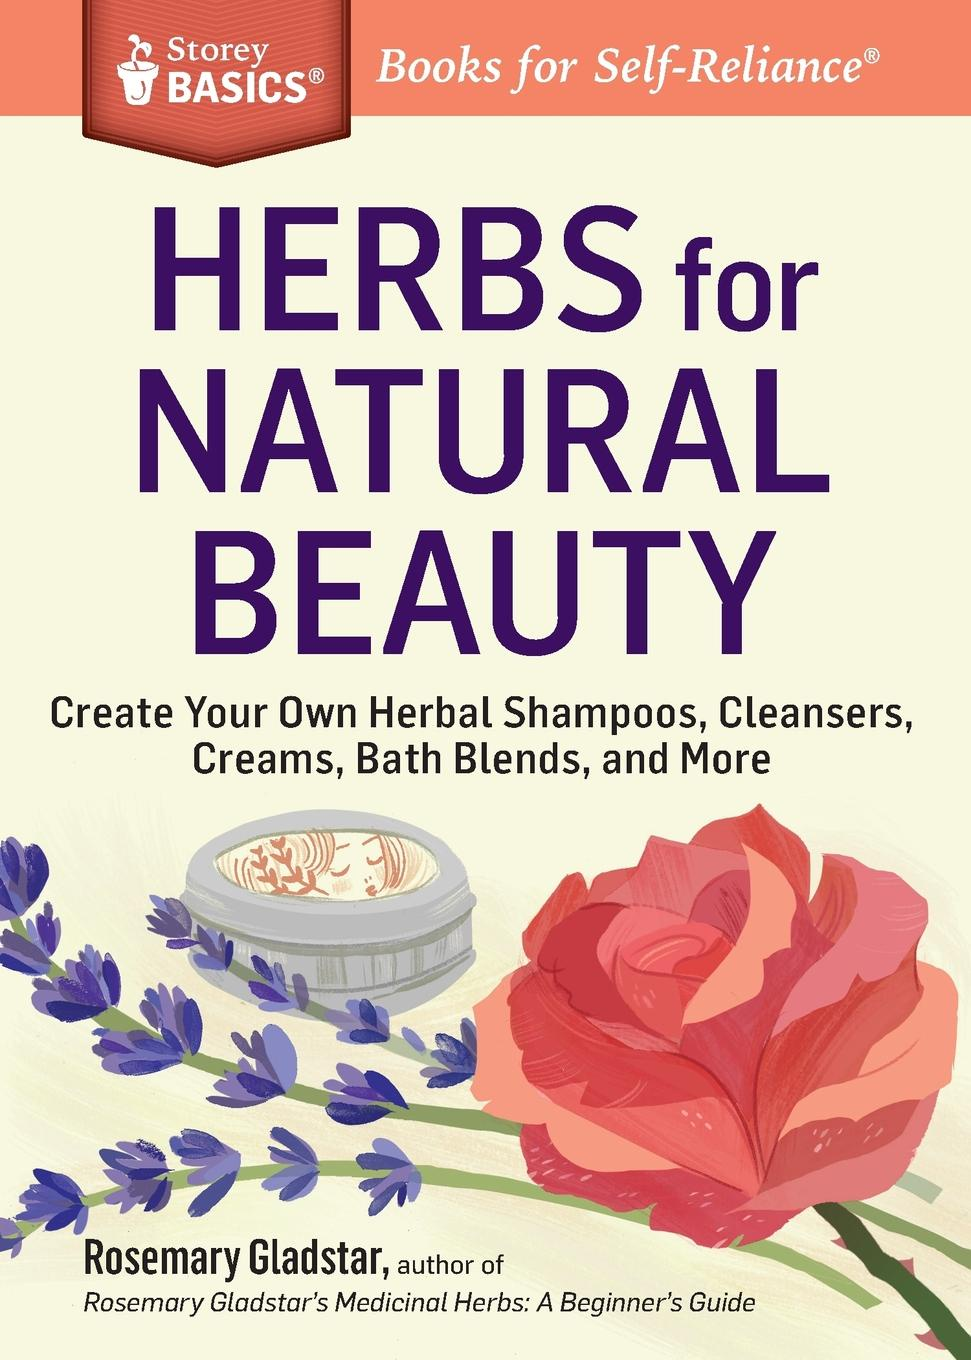 Фото - Rosemary Gladstar Herbs for Natural Beauty. Create Your Own Herbal Shampoos, Cleansers, Creams, Bath Blends, and More. A Storey BASICS. Title mark kopecky managing manure how to store compost and use organic livestock wastes a storey basics title